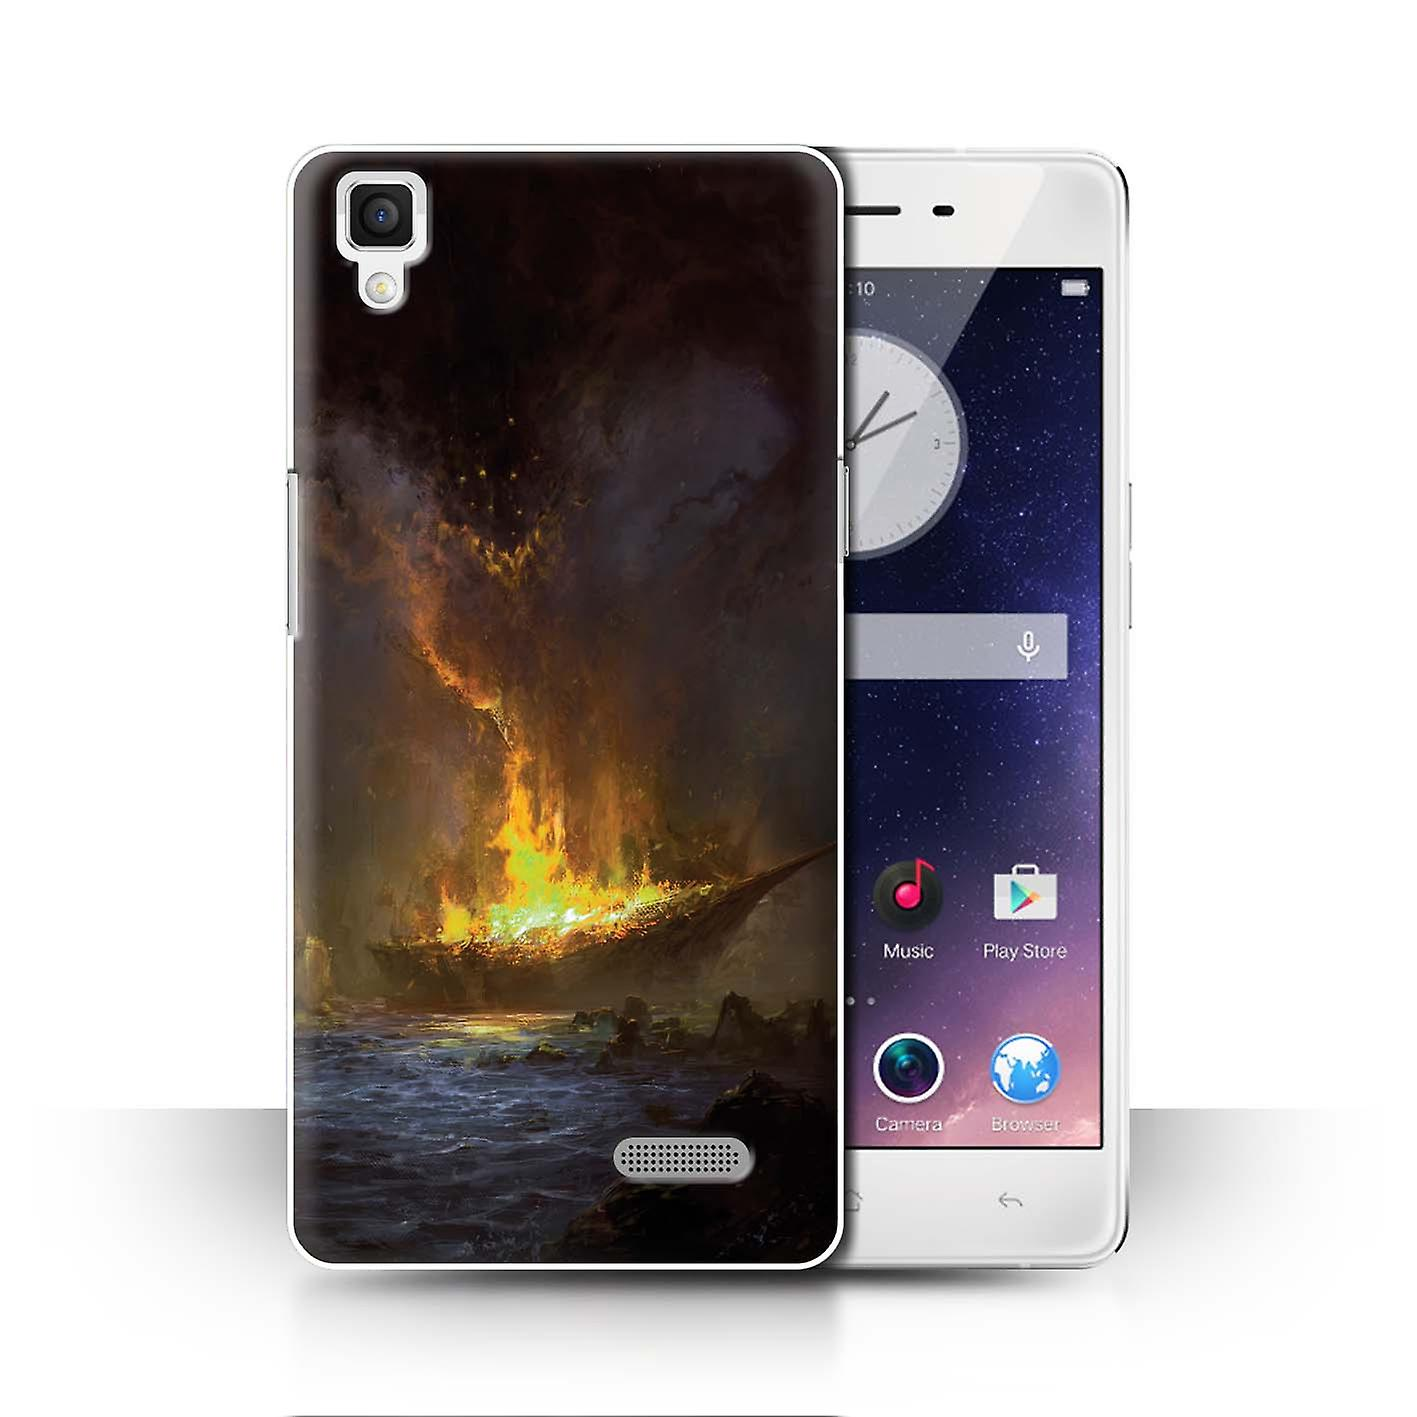 shipwreck case Peter iredale shipwreck, or iphone x case for sale by vito palmisano protect your iphone x with an impact-resistant, slim-profile, hard-shell case the image is printed directly onto the case and wrapped around the edges for a beautiful presentation simply snap the case onto your iphone x for instant protection and direct access to all of the phone's features.